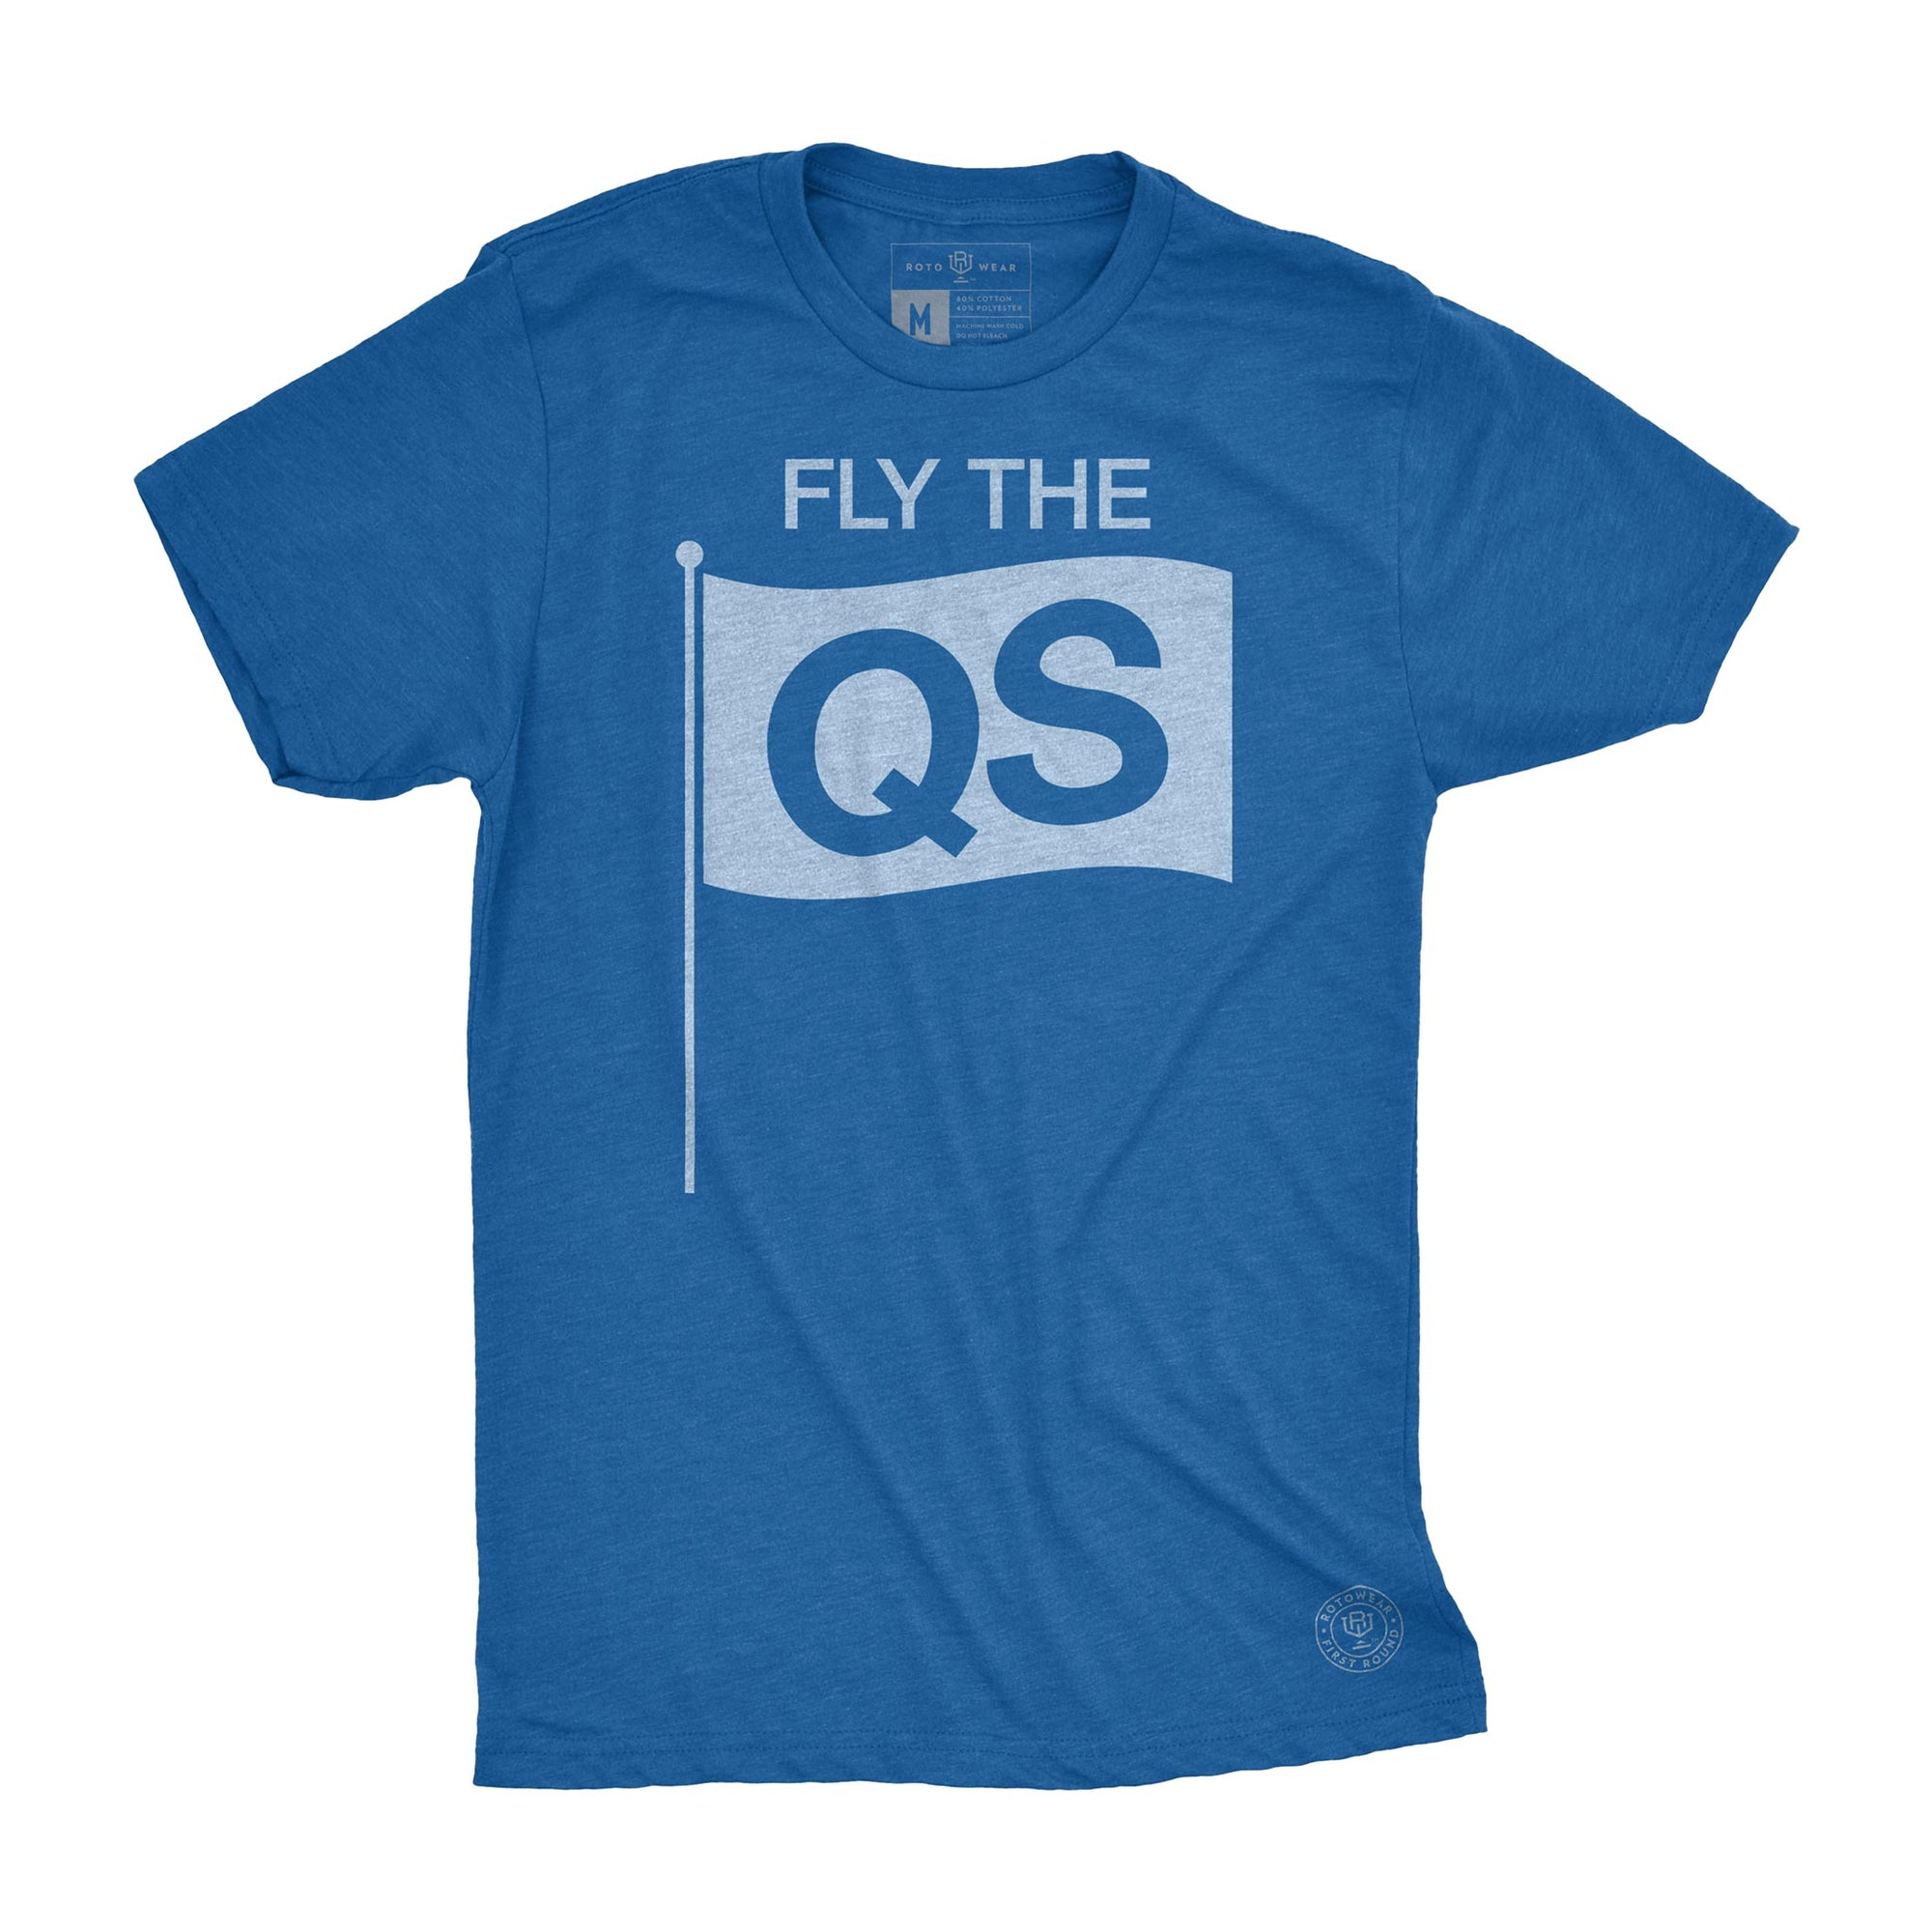 Fly The QS men's t-shirt by RotoWear for fantasy baseball managers and baseball fans who value quality starts over wins